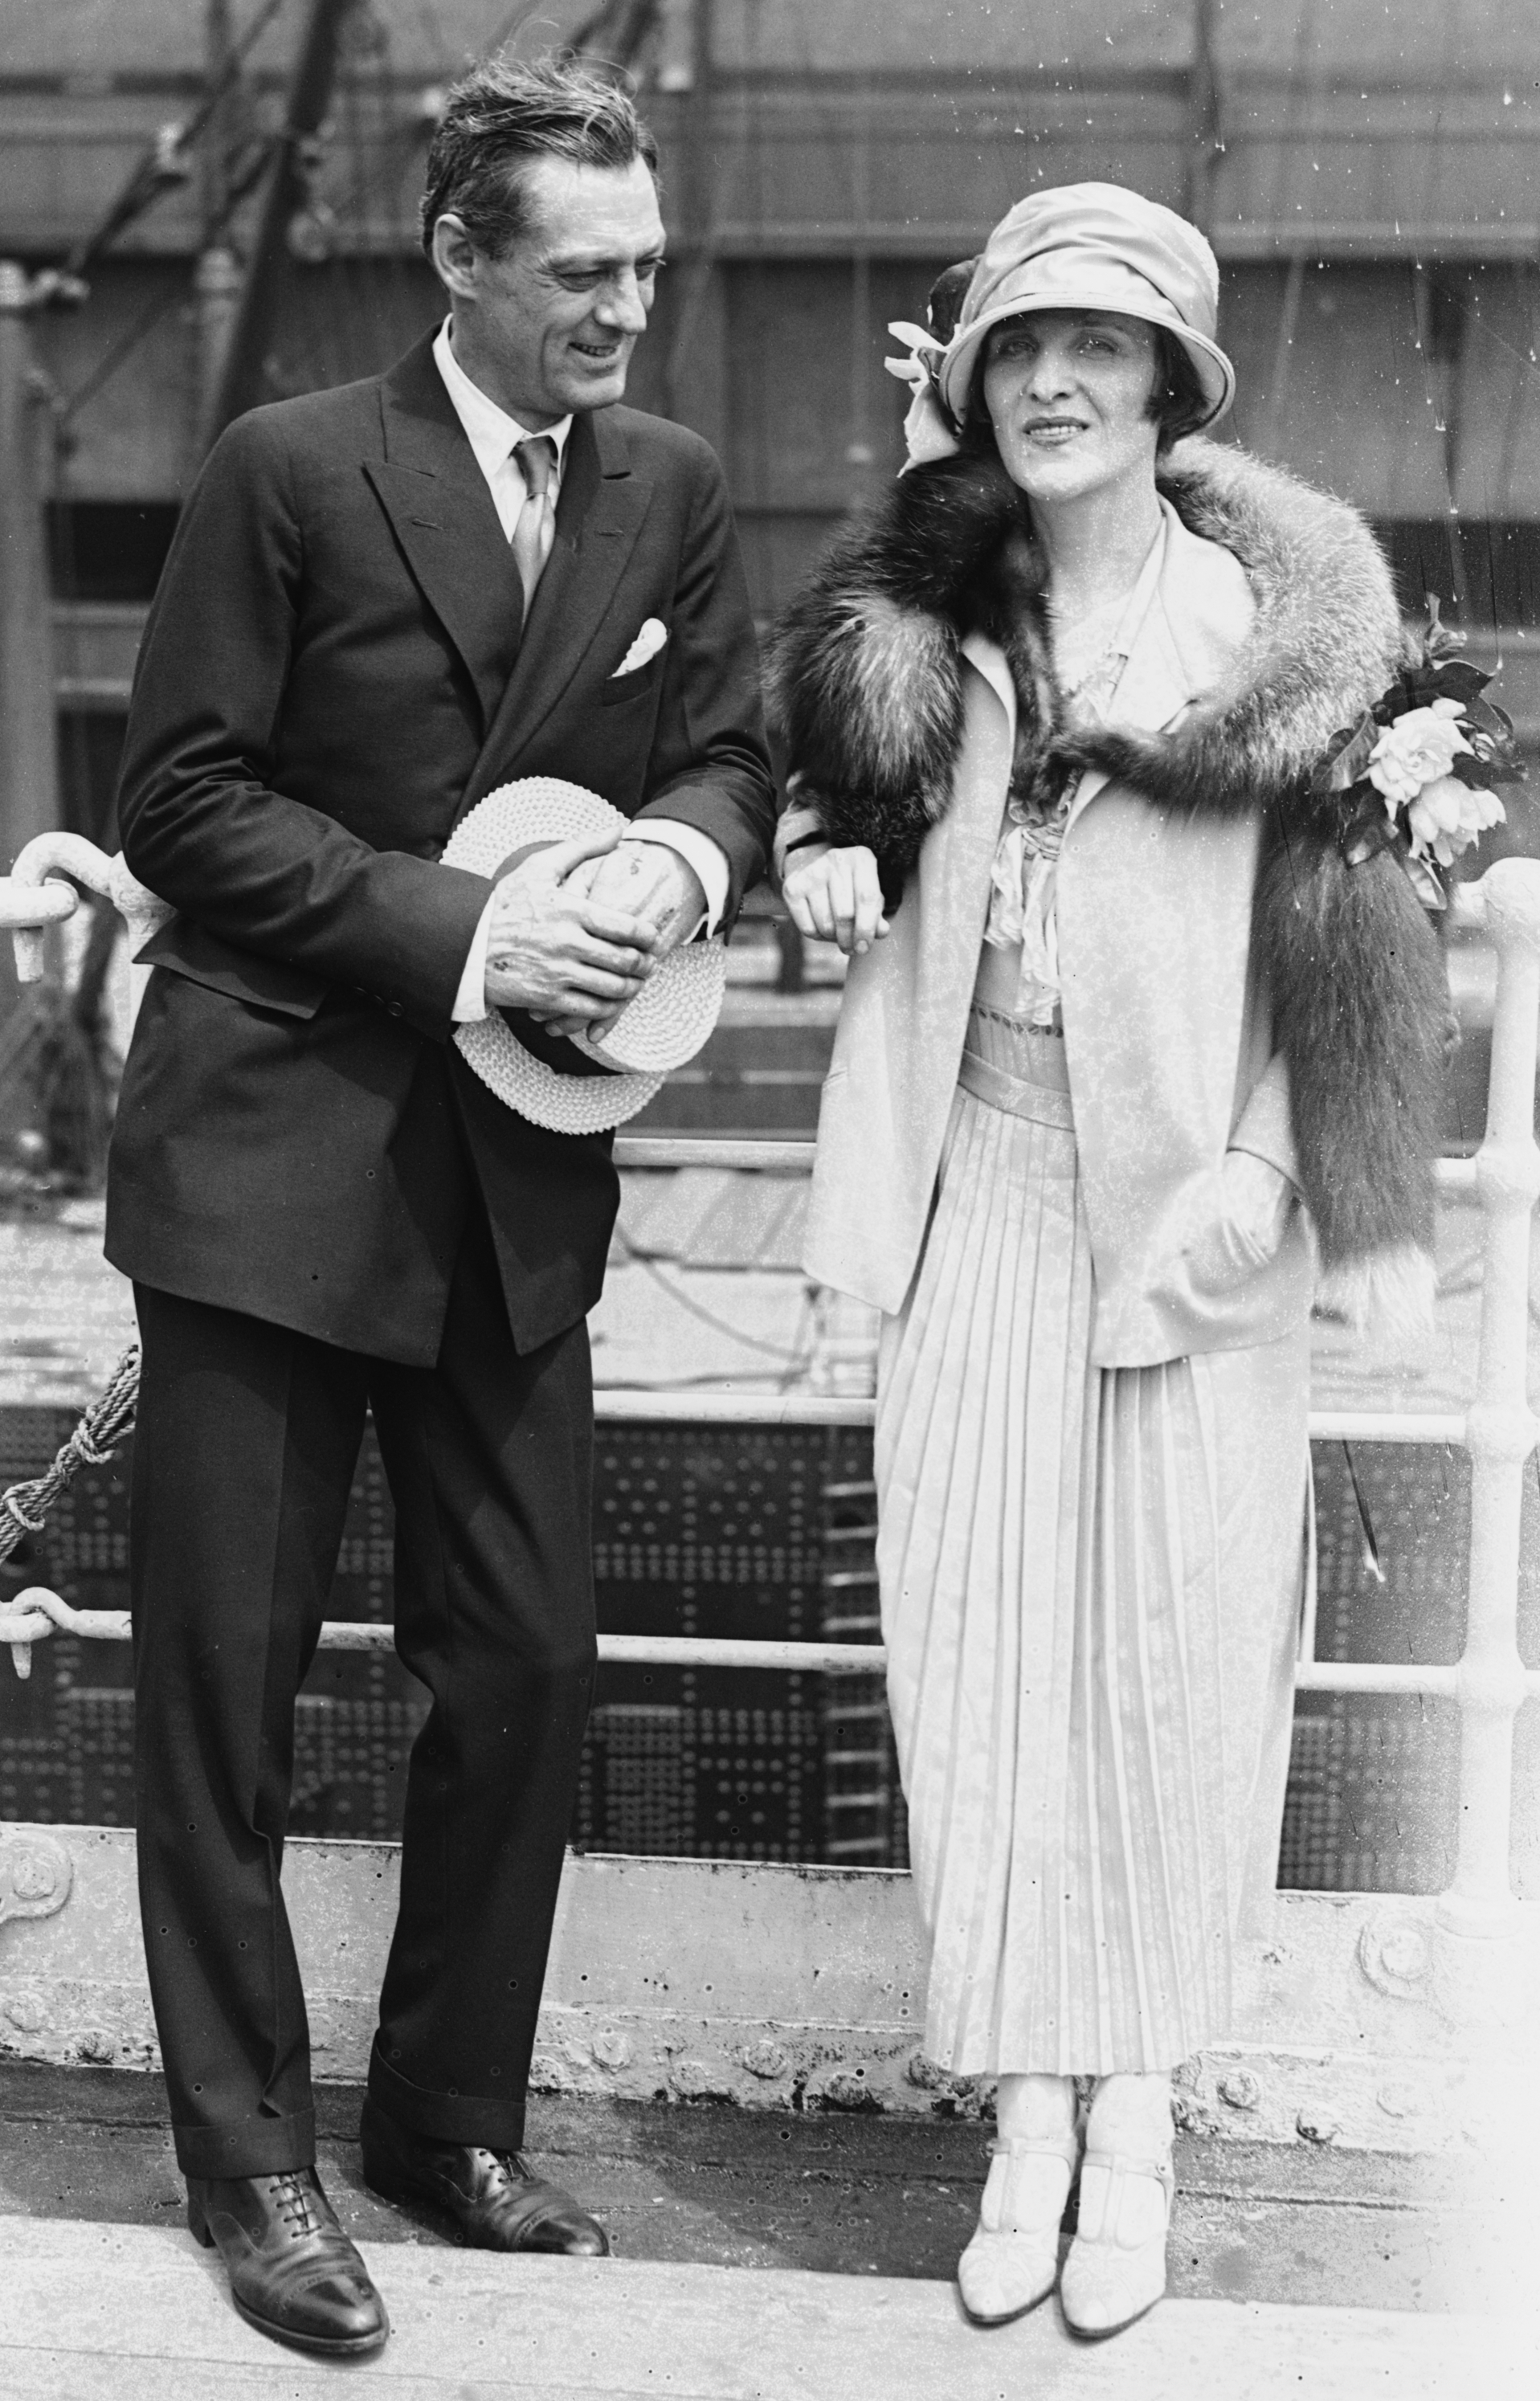 american fashion in the 1920s and 2017-3-29 get information about 1920s fashion from the dk find out website for kids improve your knowledge on 1920s fashion trends and learn more with dk find out.